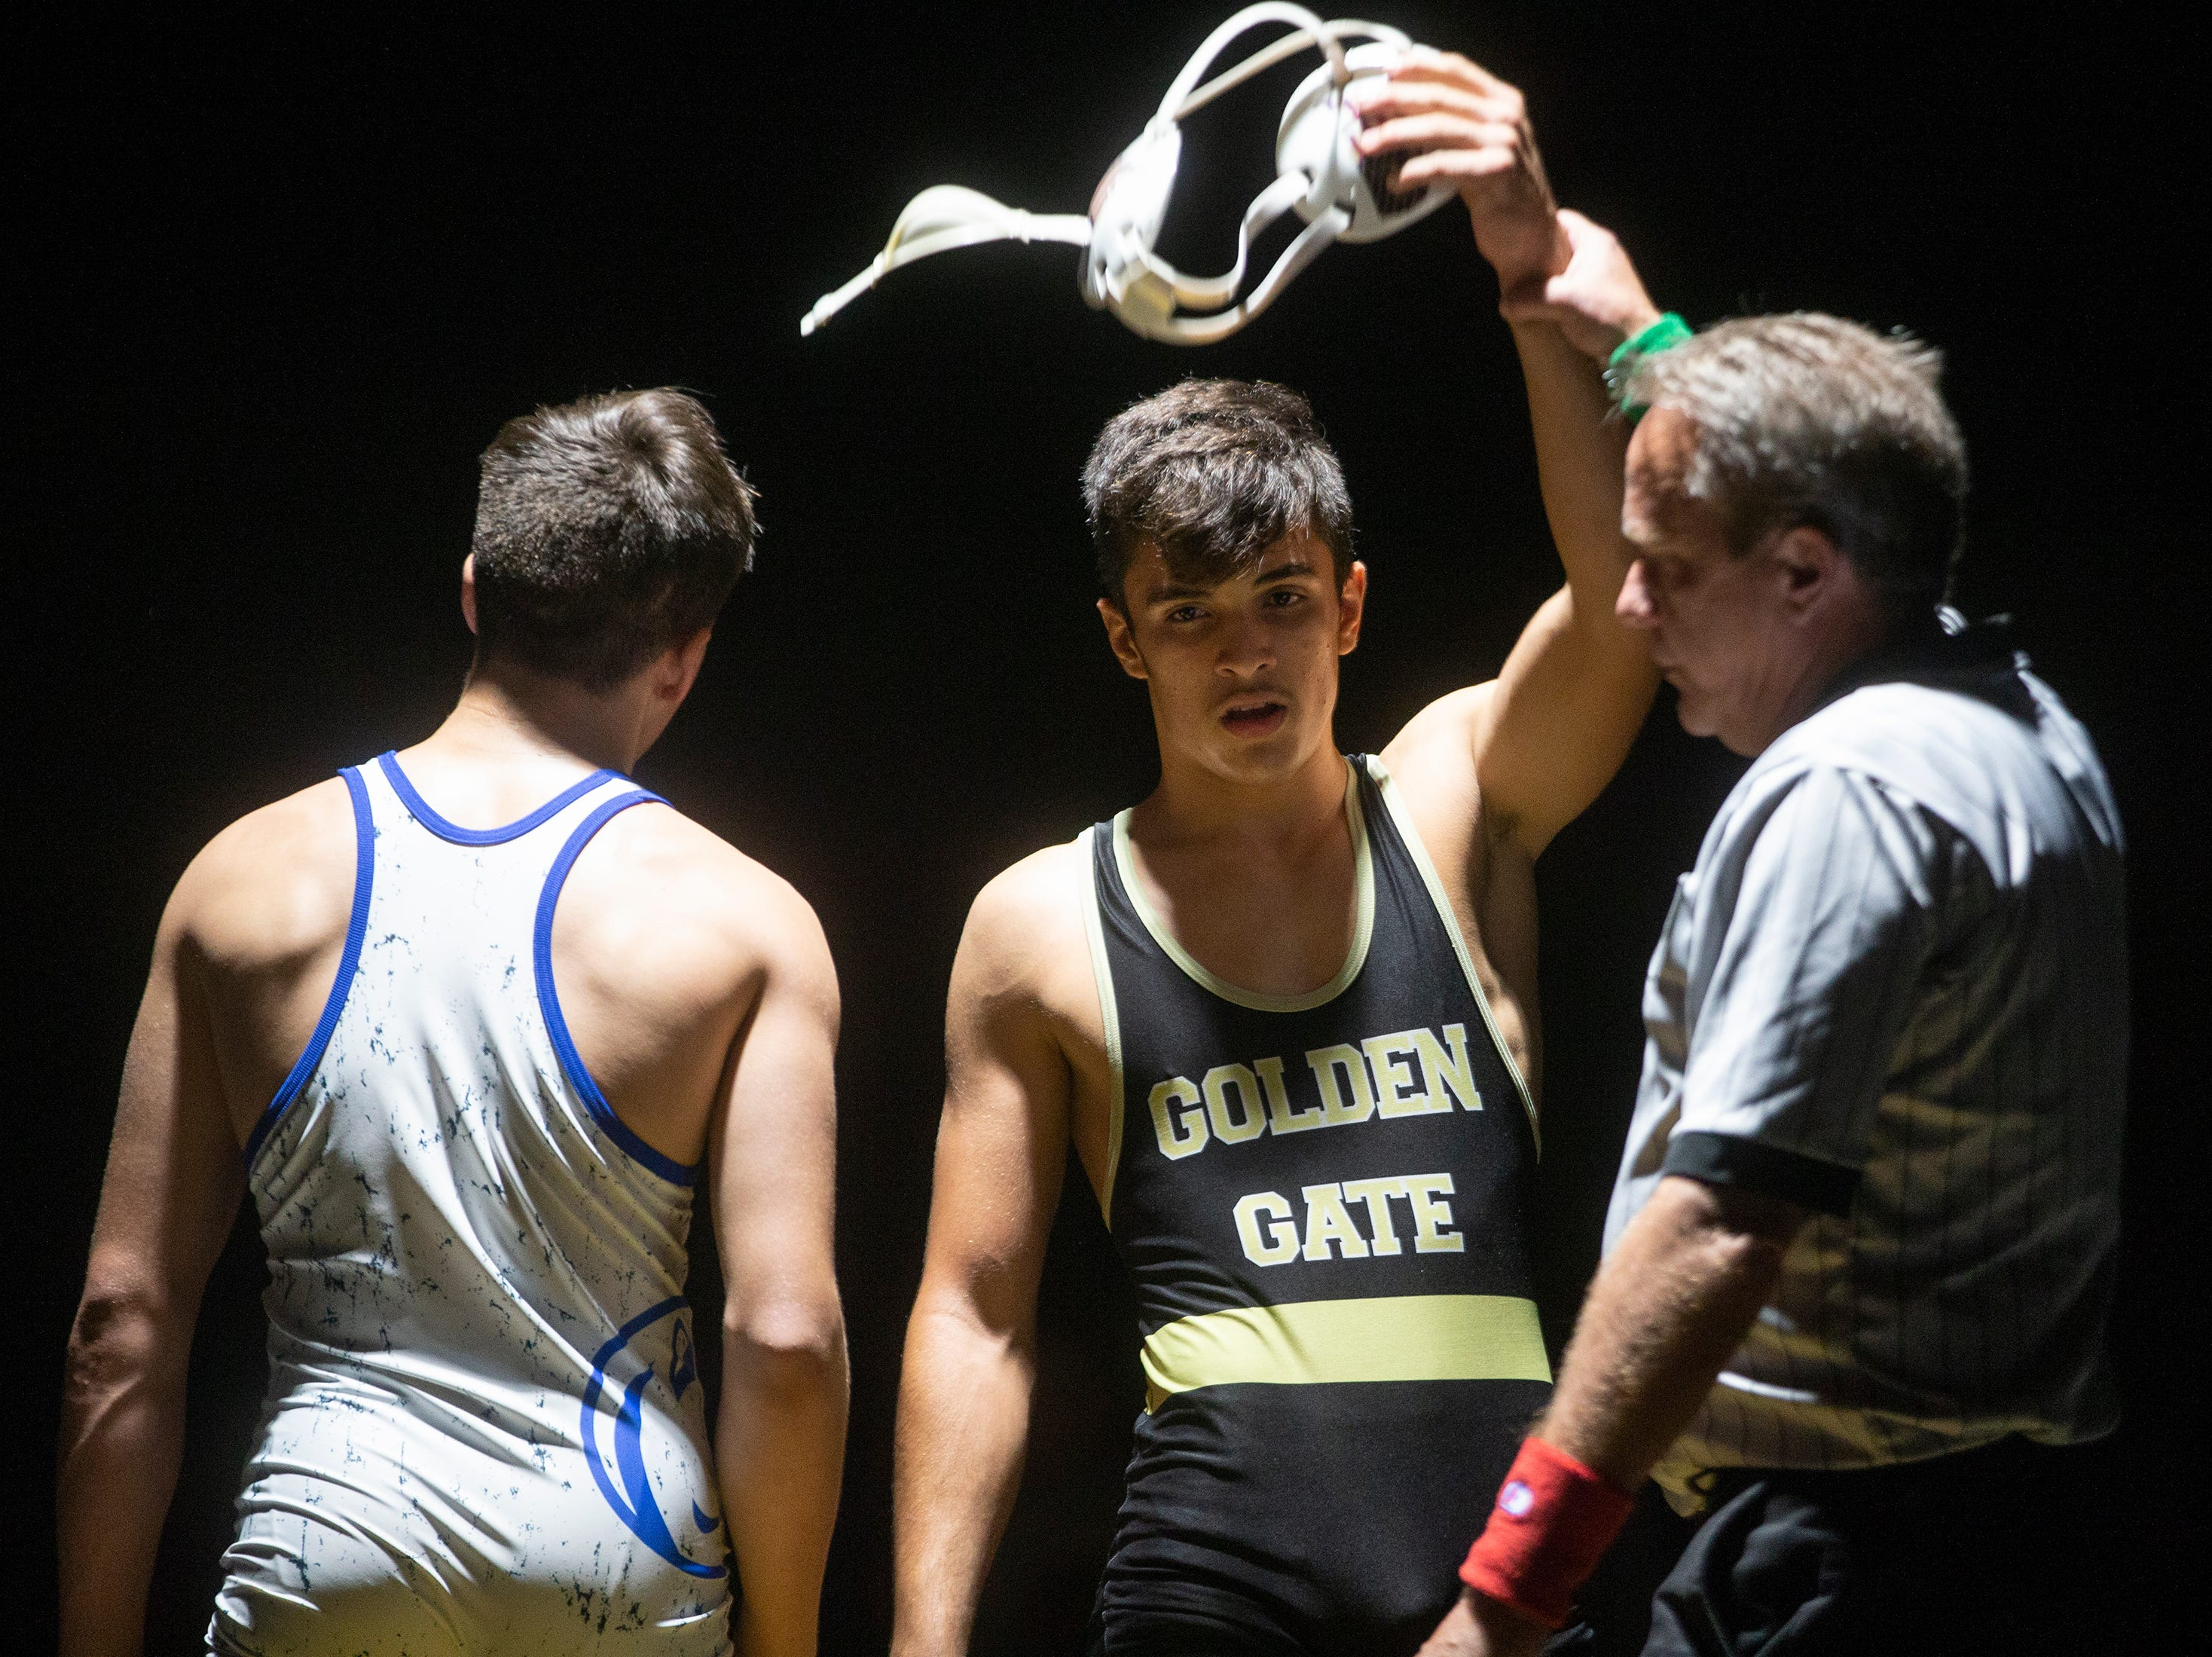 Golden Gate High School's Lais Cardero defeats Barron G. Collier High School's Cory Cannan in the 152-pound weight class during the Collier County Athletic Conference wrestling championship, Wednesday, Jan. 9, 2018, at Naples High School.